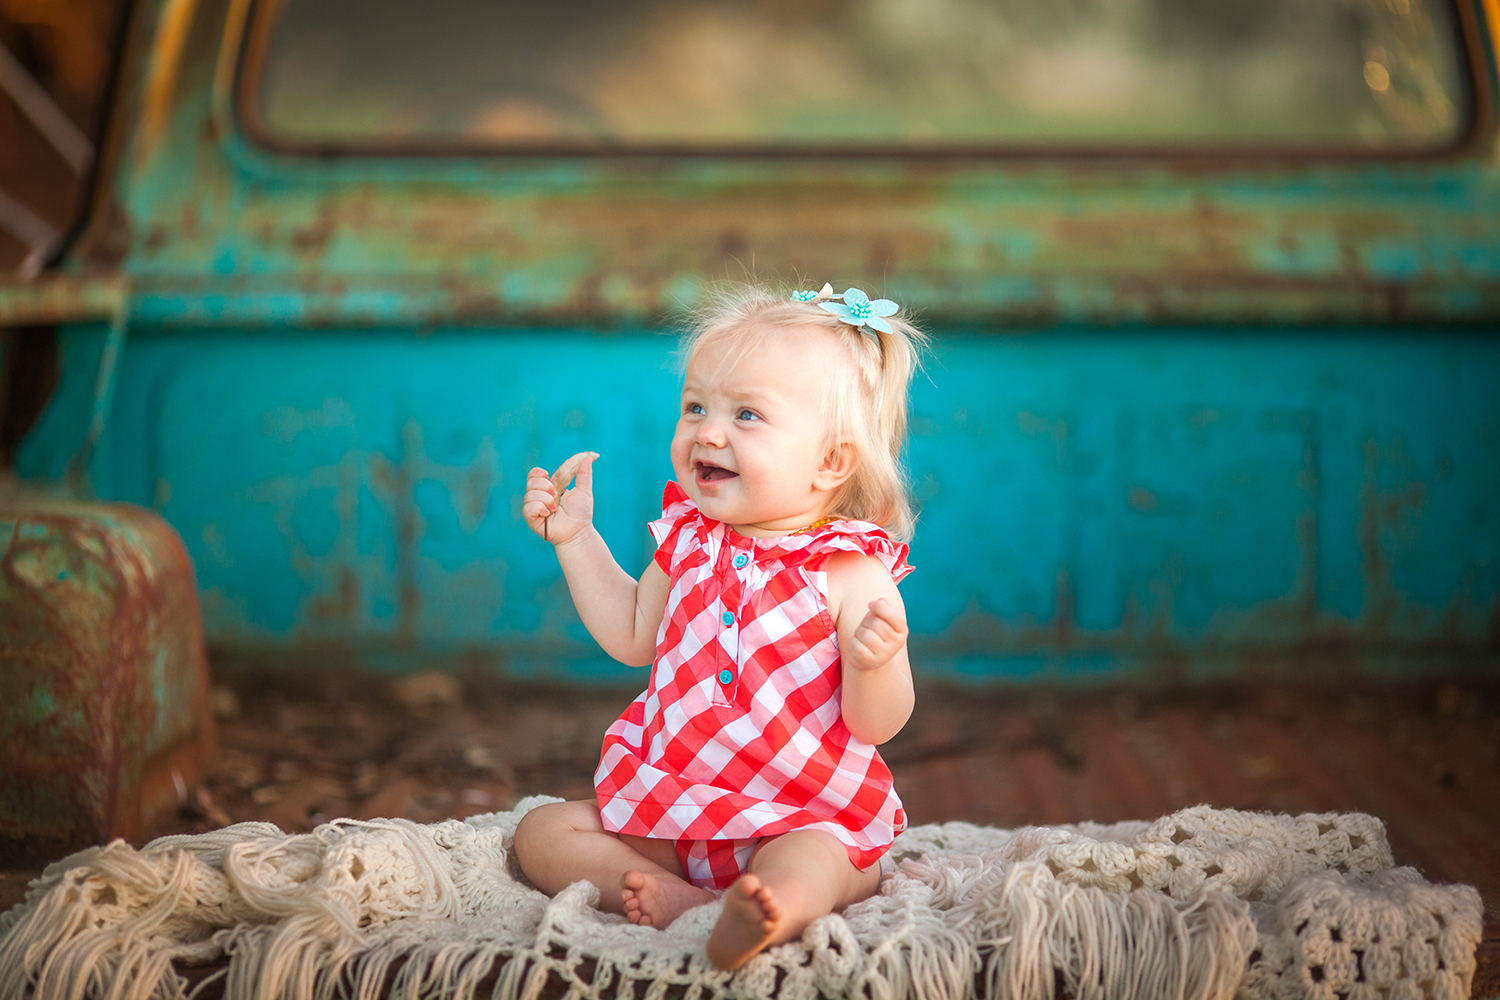 Dena_Rooney_baby photographer_0023.jpg